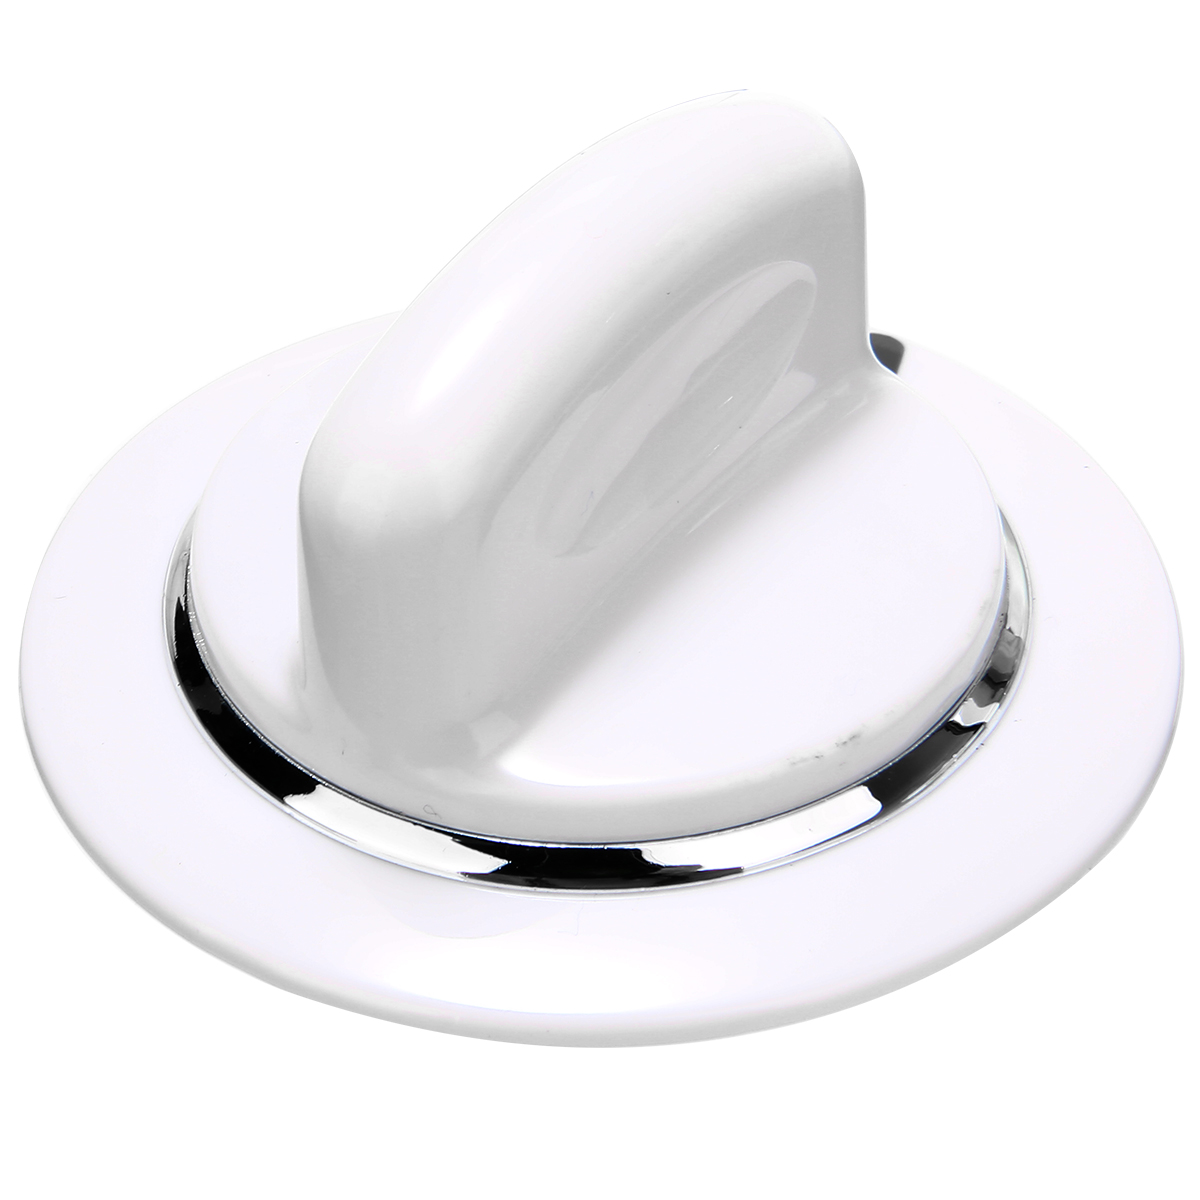 1PC White Dryer Timer Knob Washer Control Knob Assembly Part For For General Electric Dryer Replacement